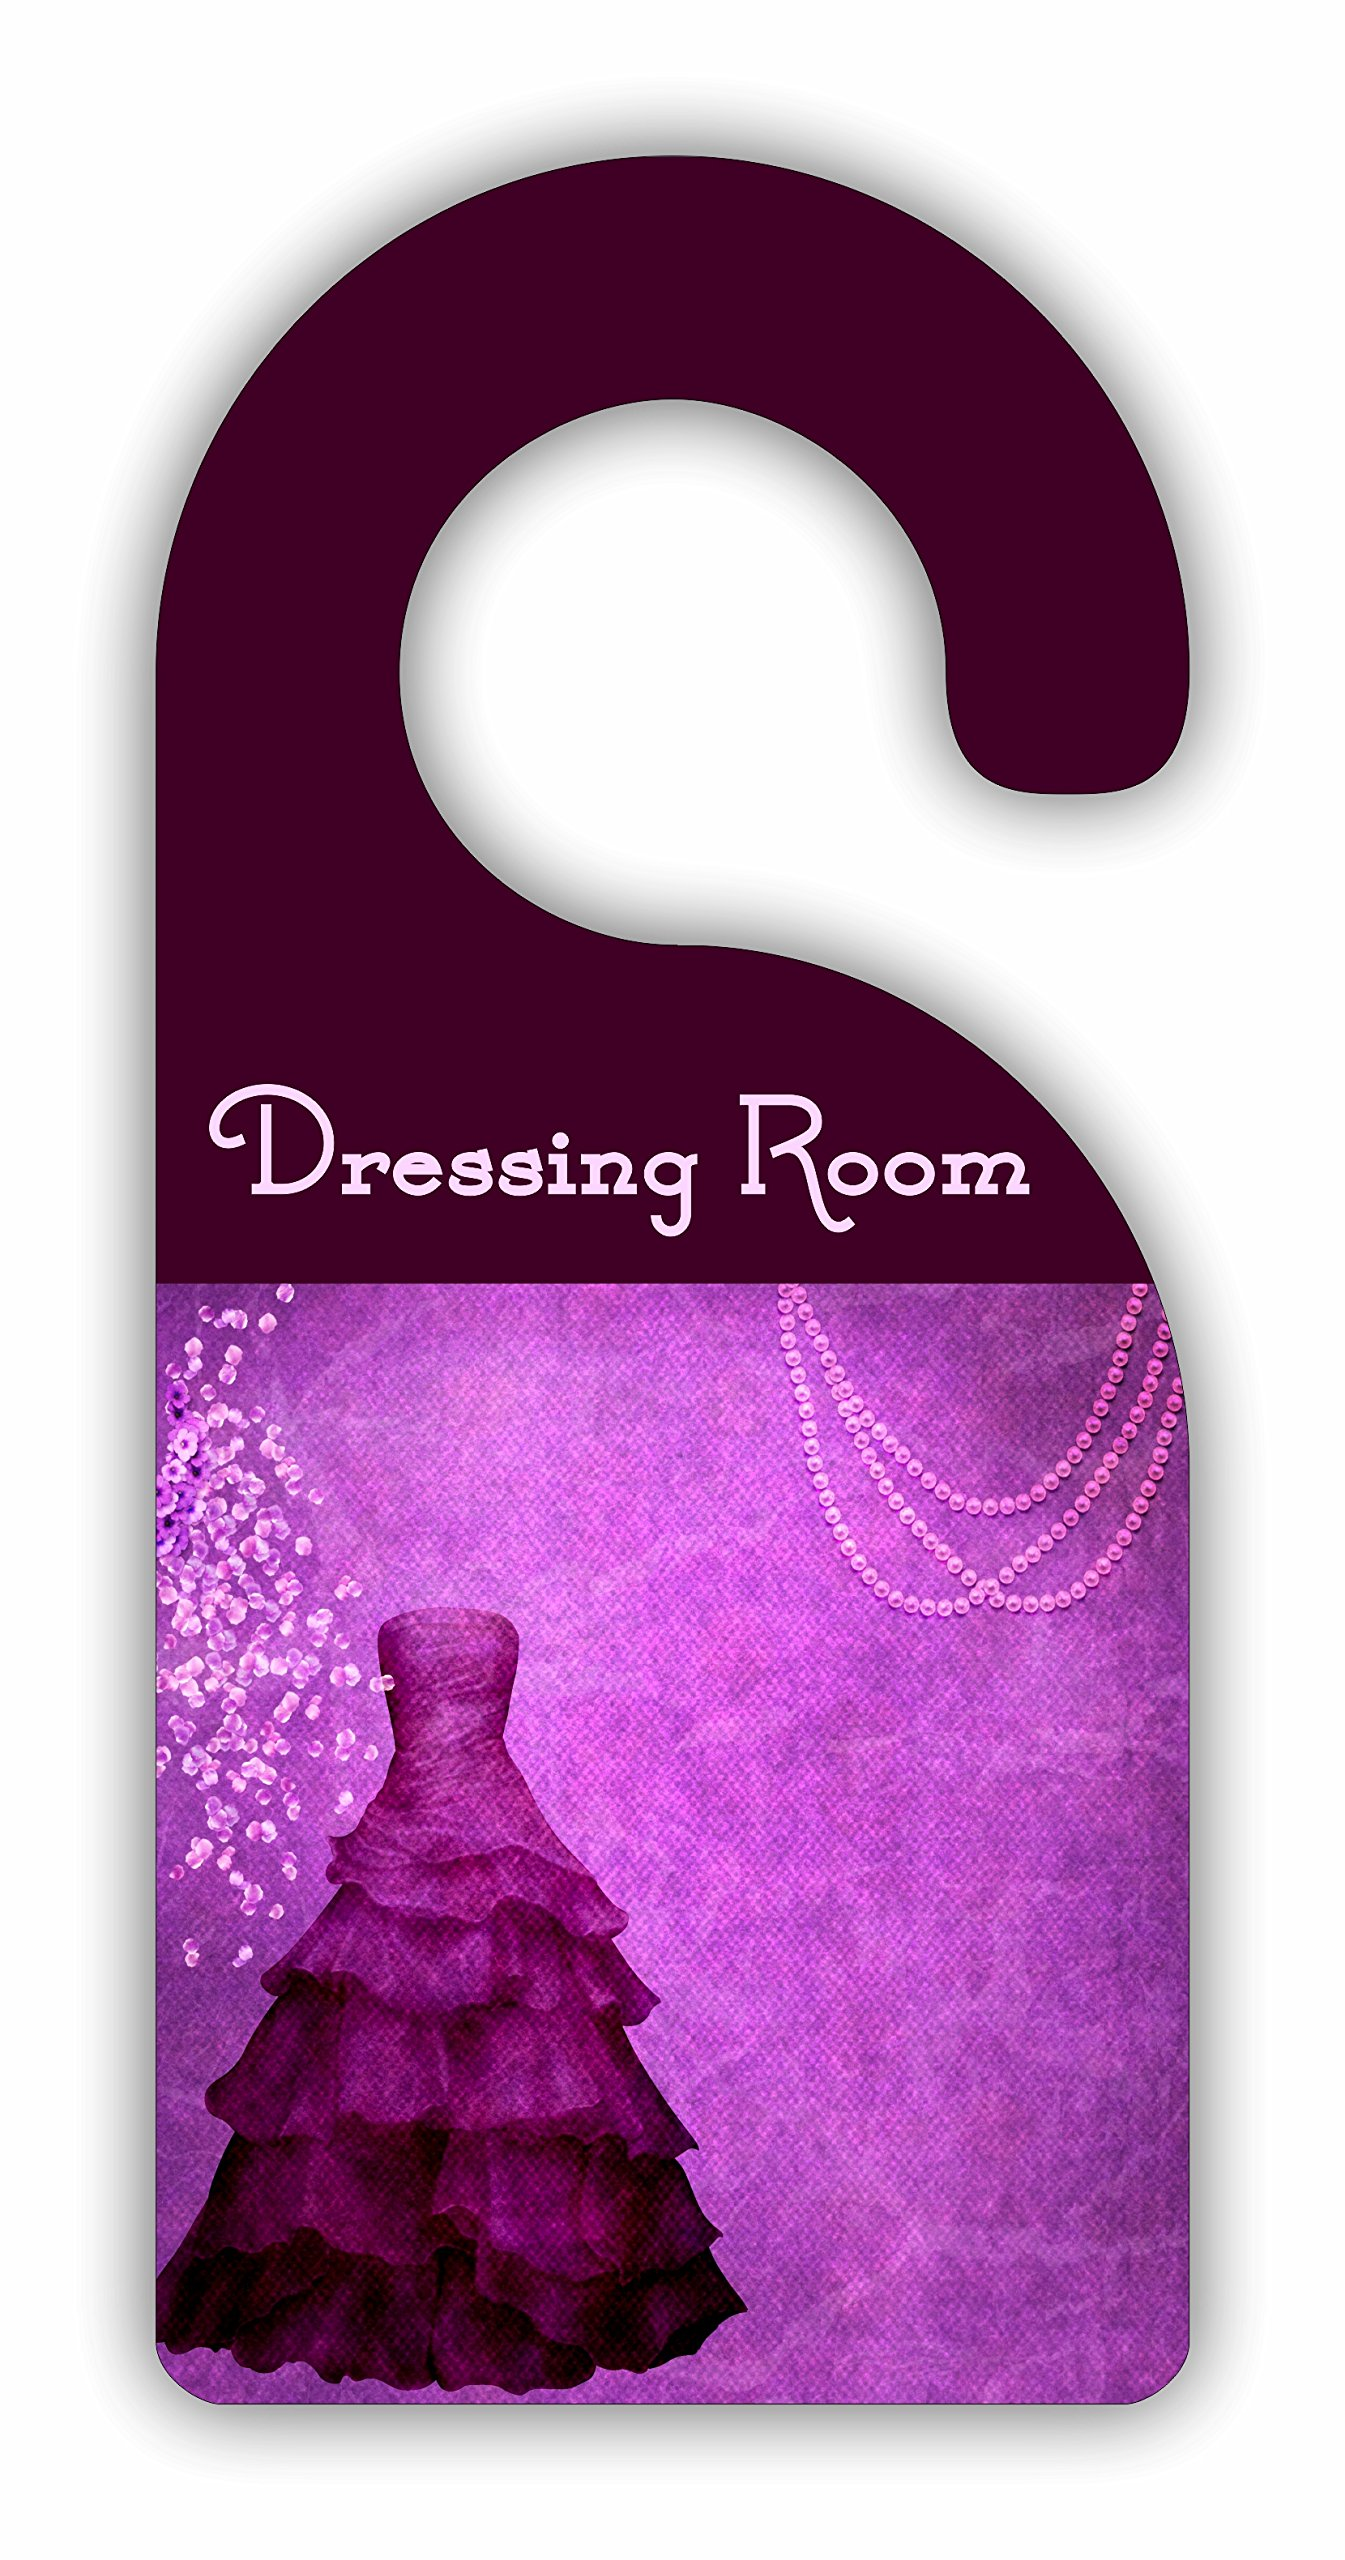 Dressing Room - Purple - Dressing/Closet Room Door Sign Hanger - Hardboard - Glossy Finish